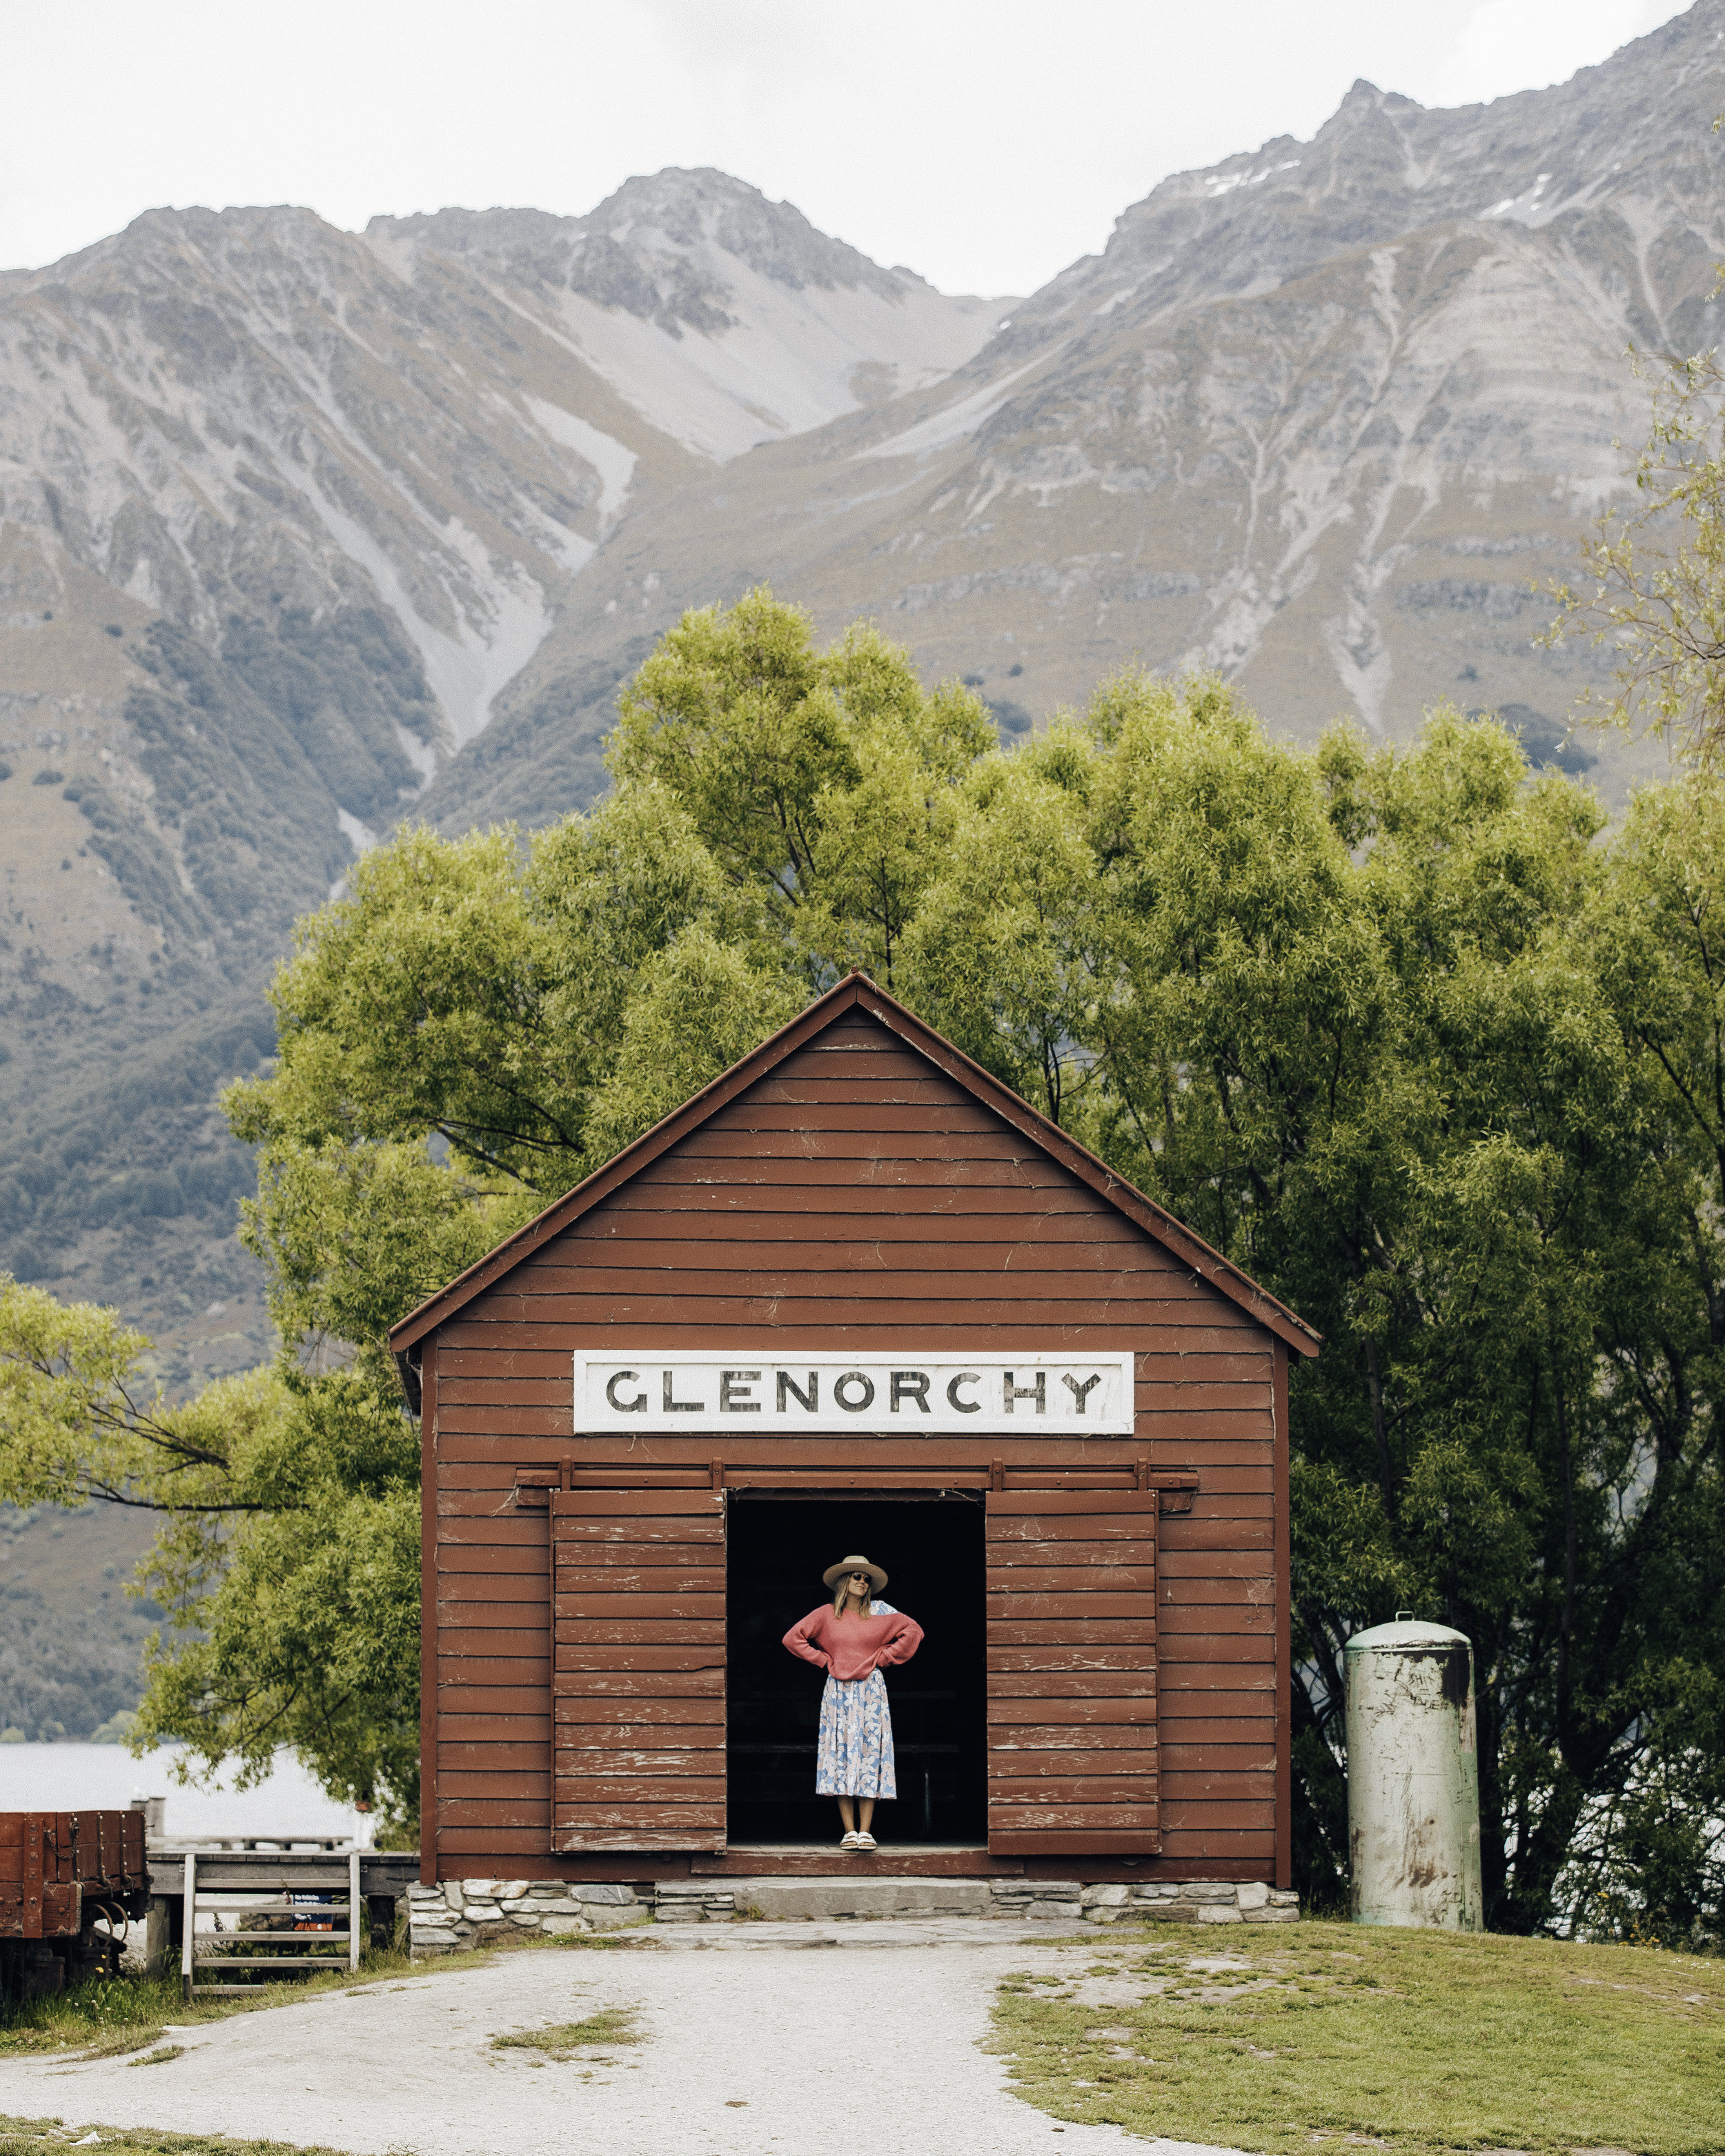 The iconic Glenorchy hut